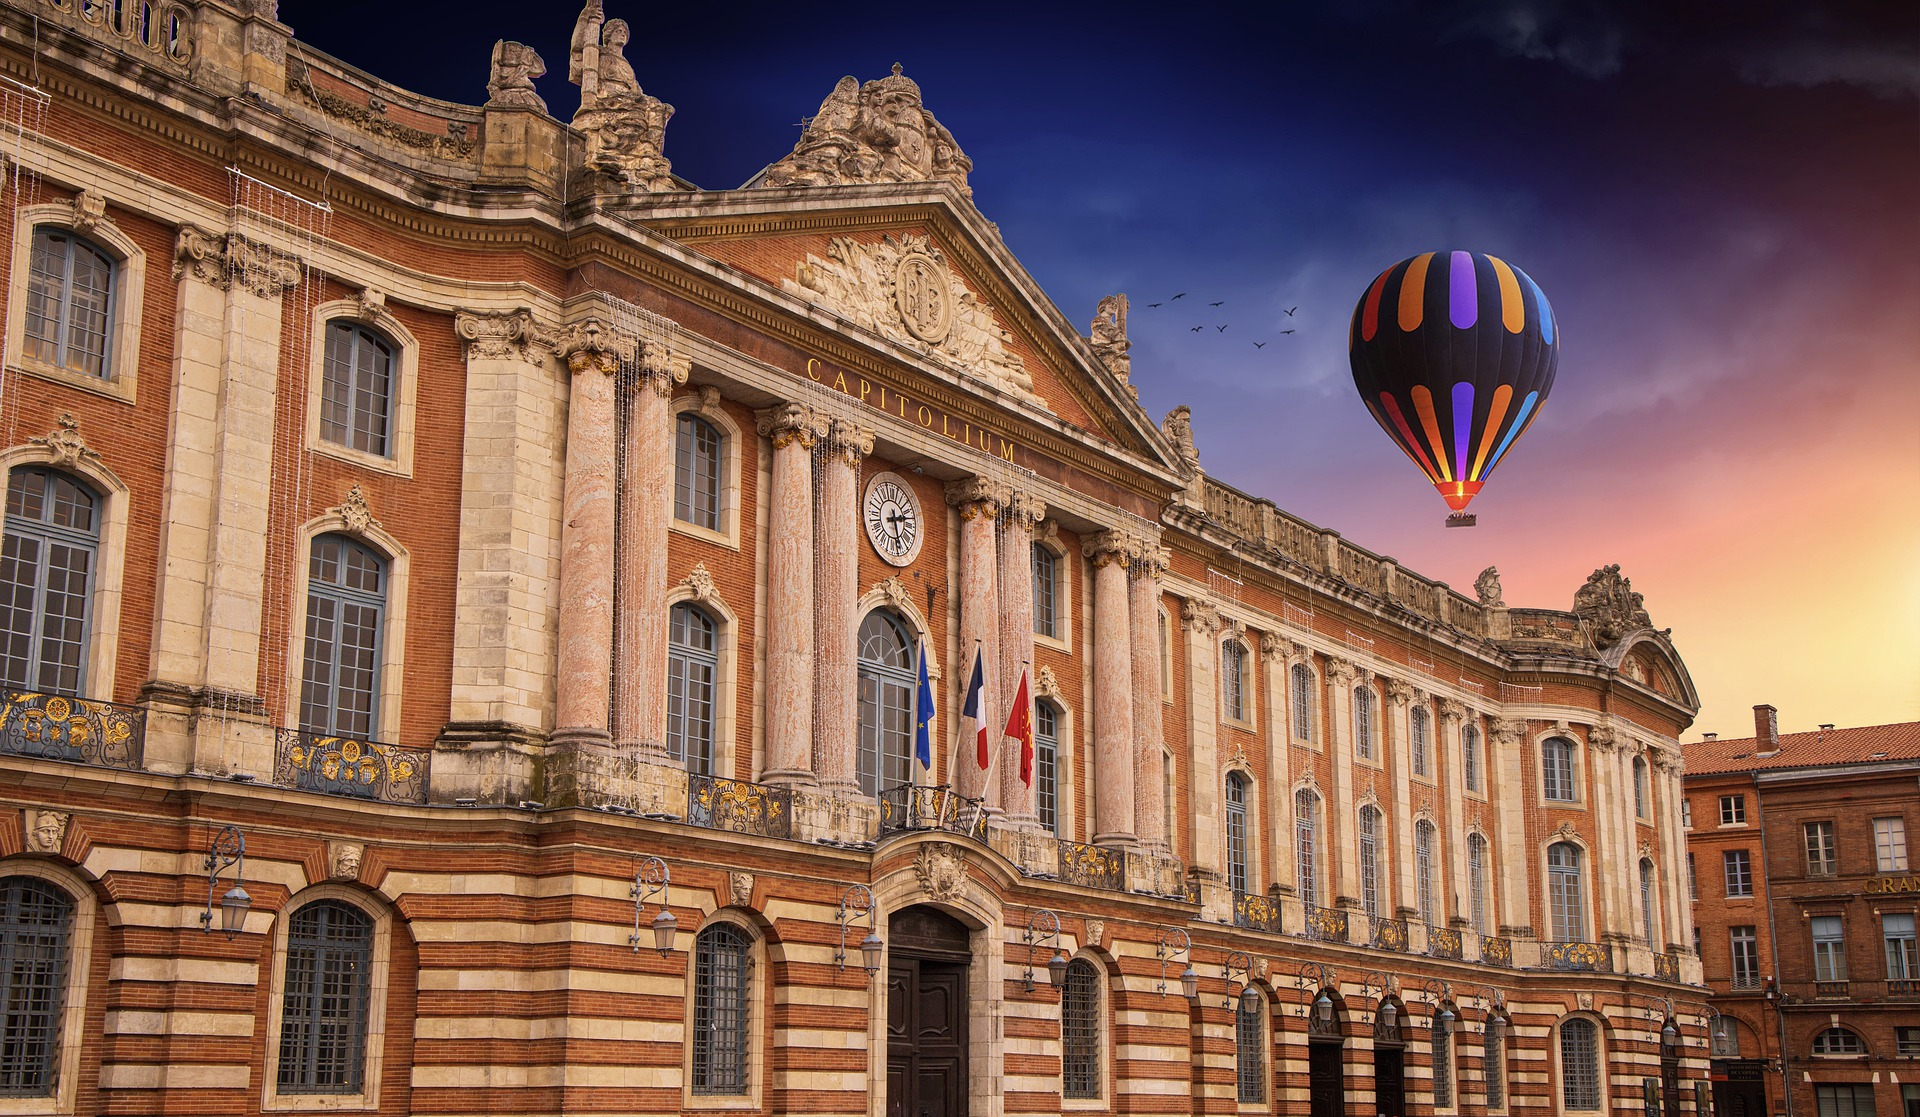 toulouse-4747440_1920